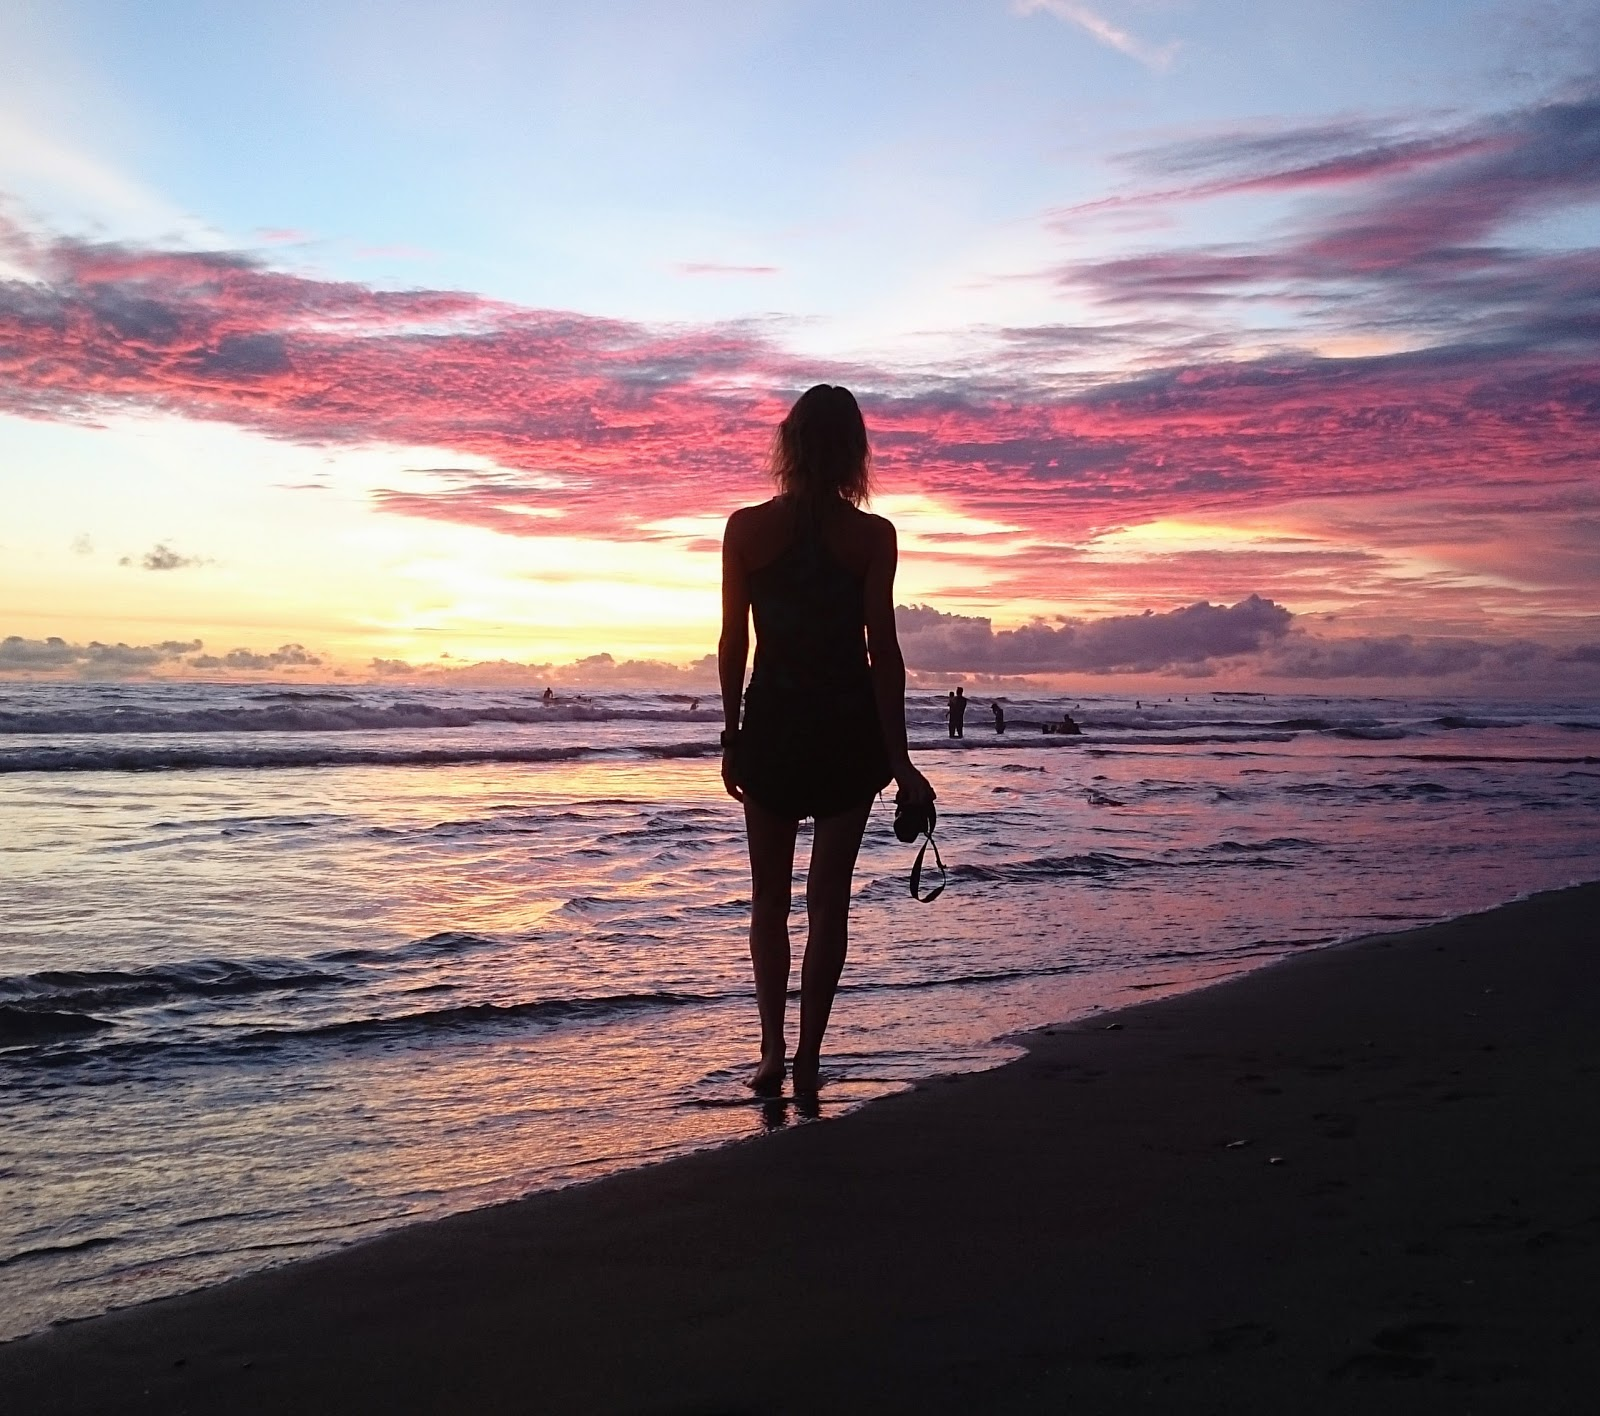 Stunning pink sunset in Canggu Bali, Indonesia